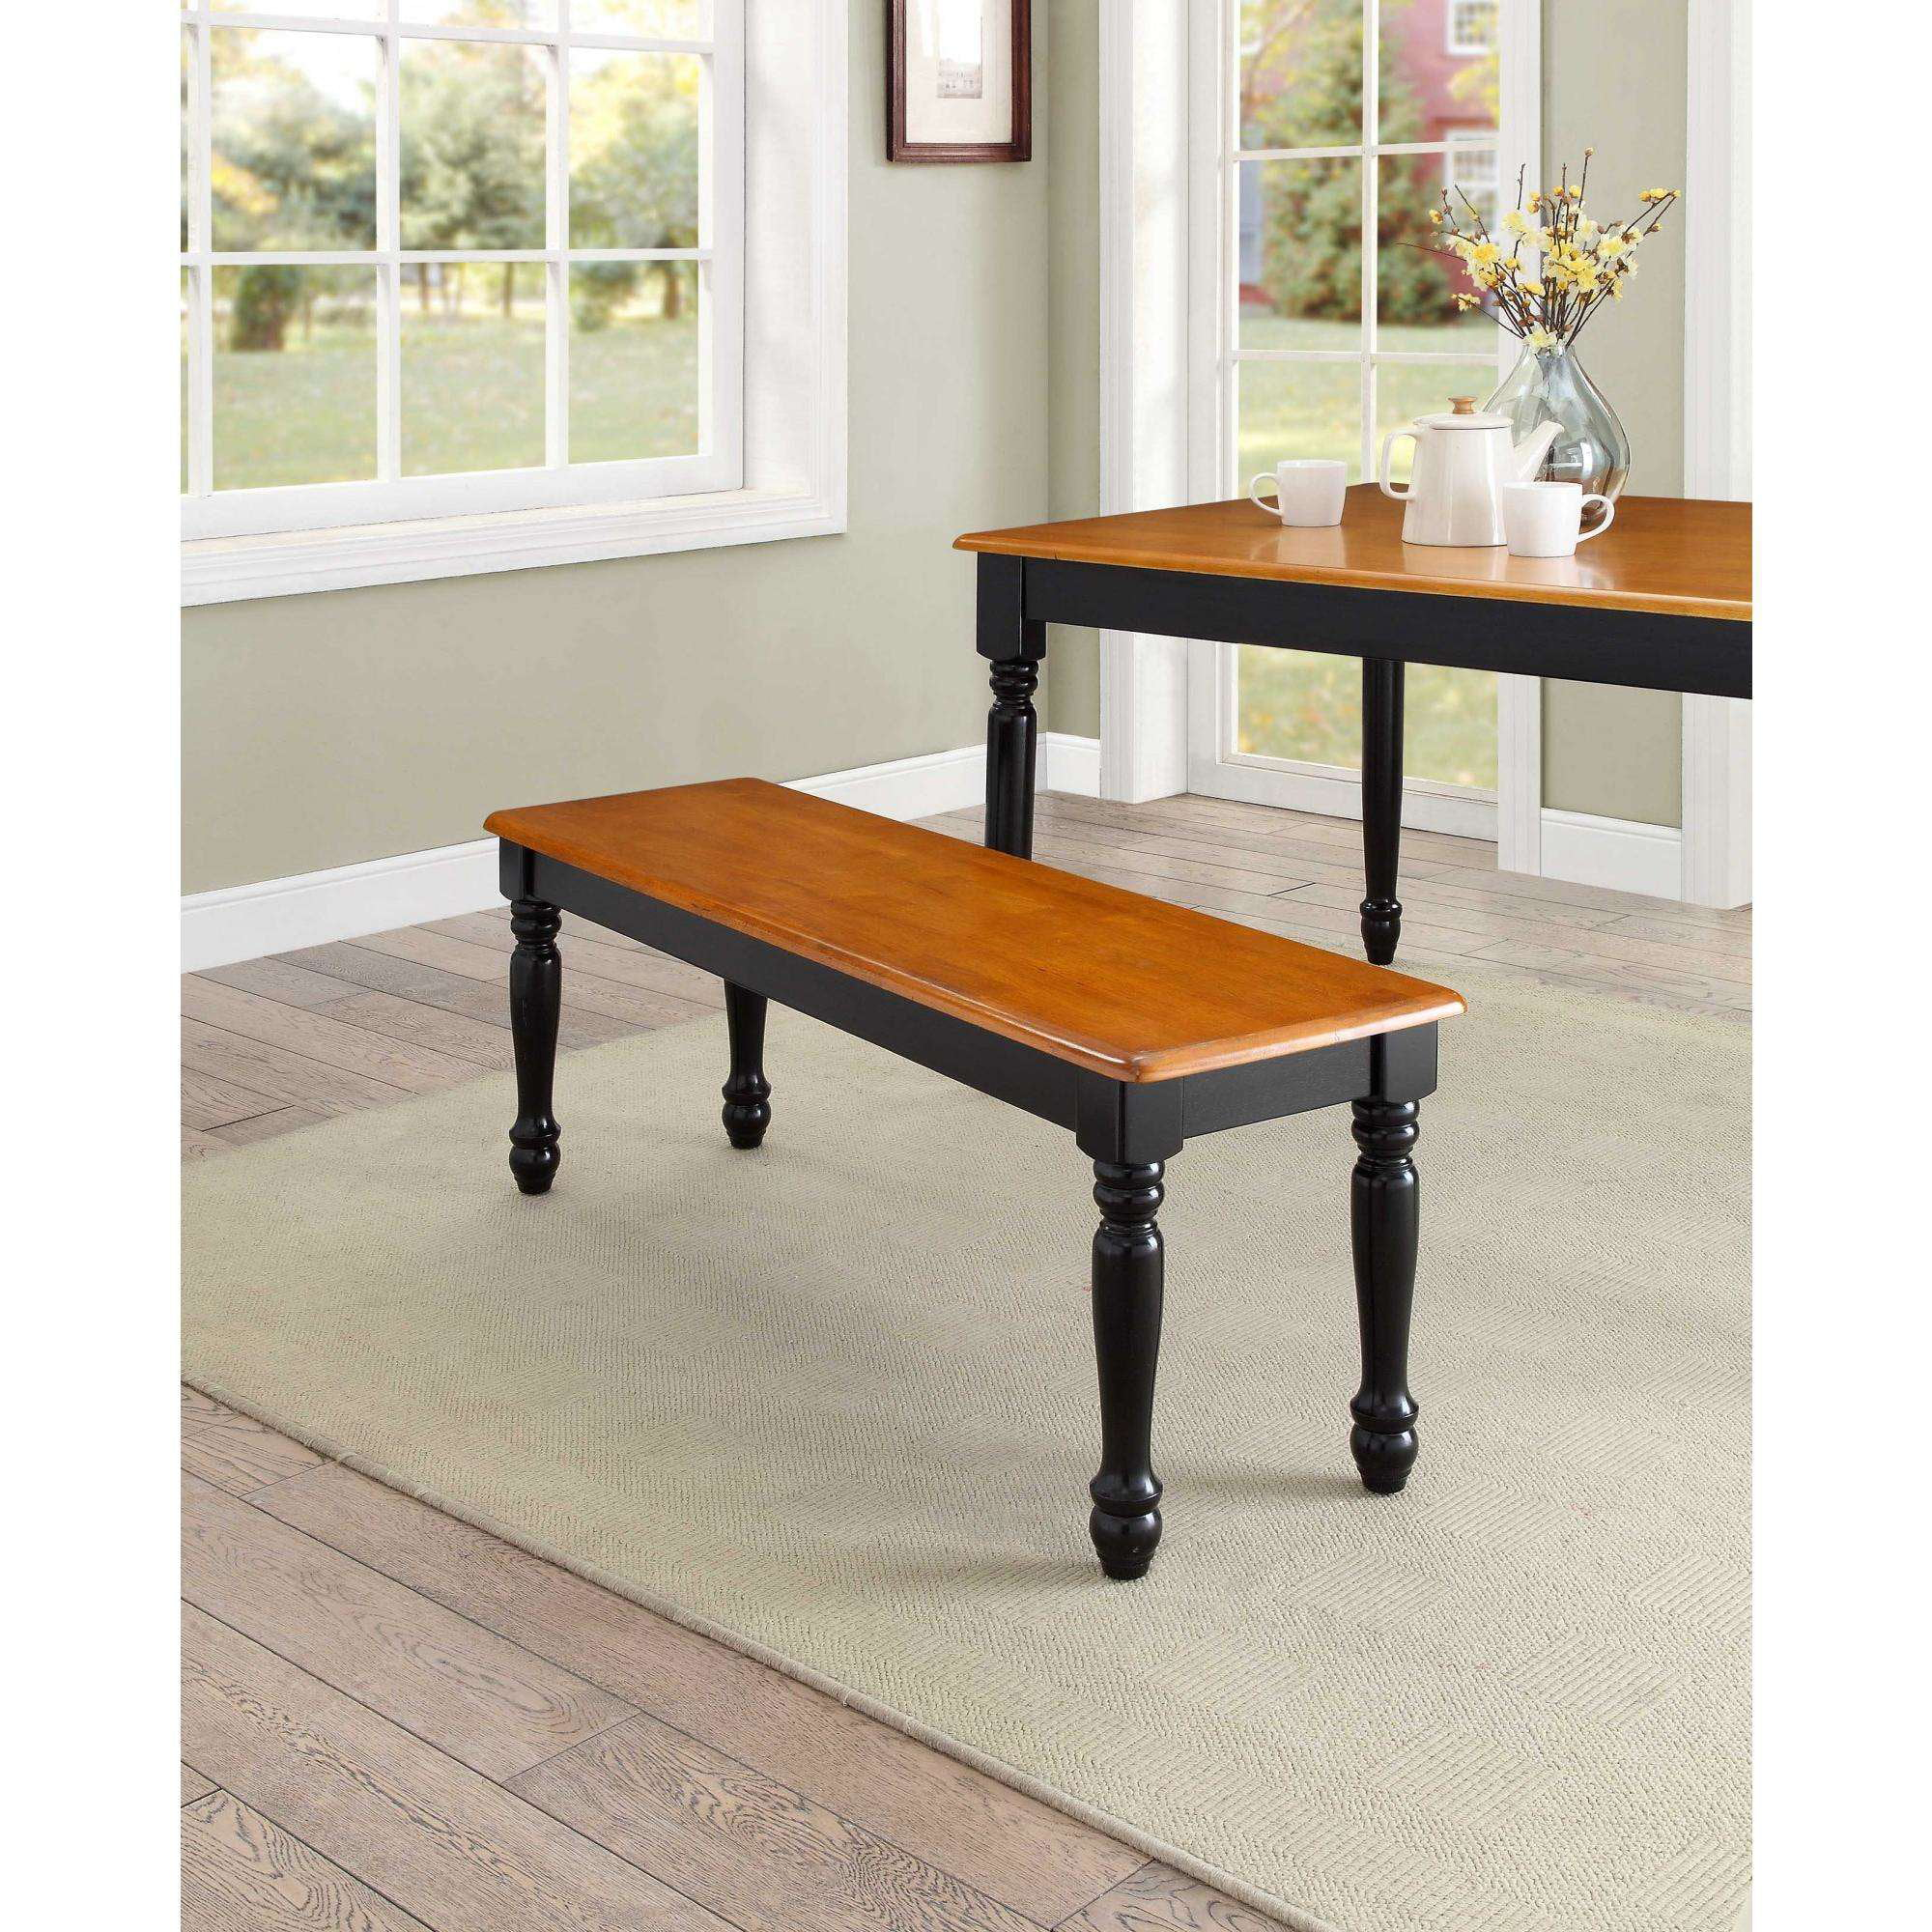 Cool Better Homes Gardens Autumn Lane Farmhouse Solid Wood Dining Bench Black And Natural Finish Caraccident5 Cool Chair Designs And Ideas Caraccident5Info